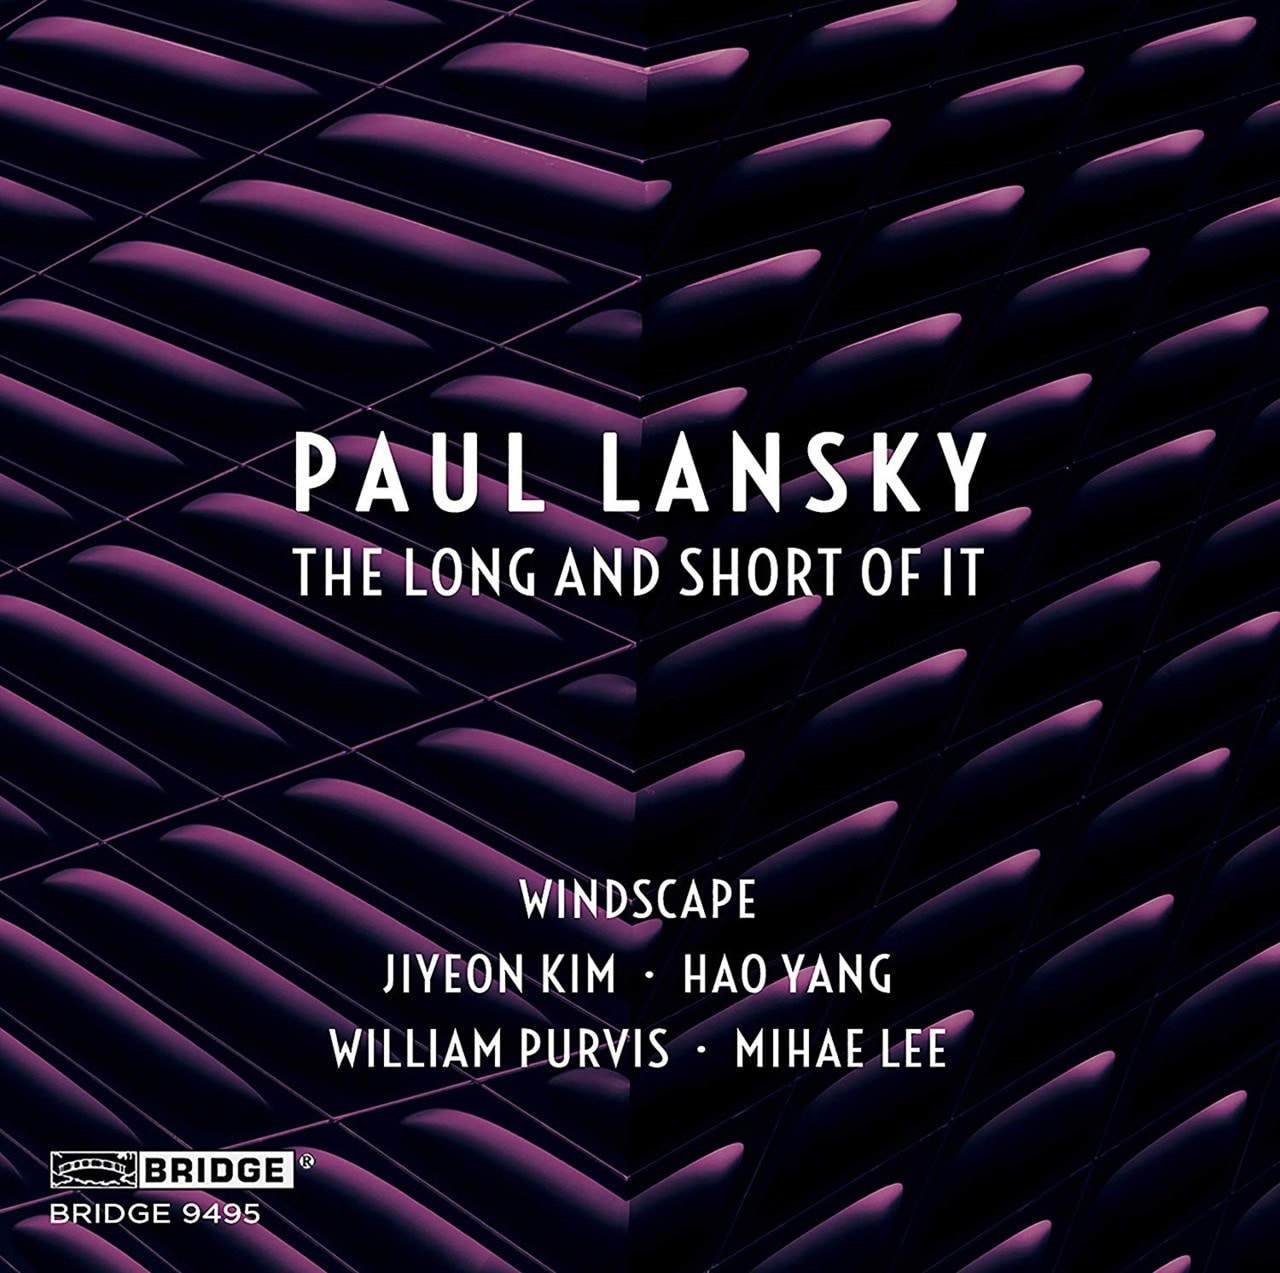 Paul Lansky: The Long and Short of It - 1